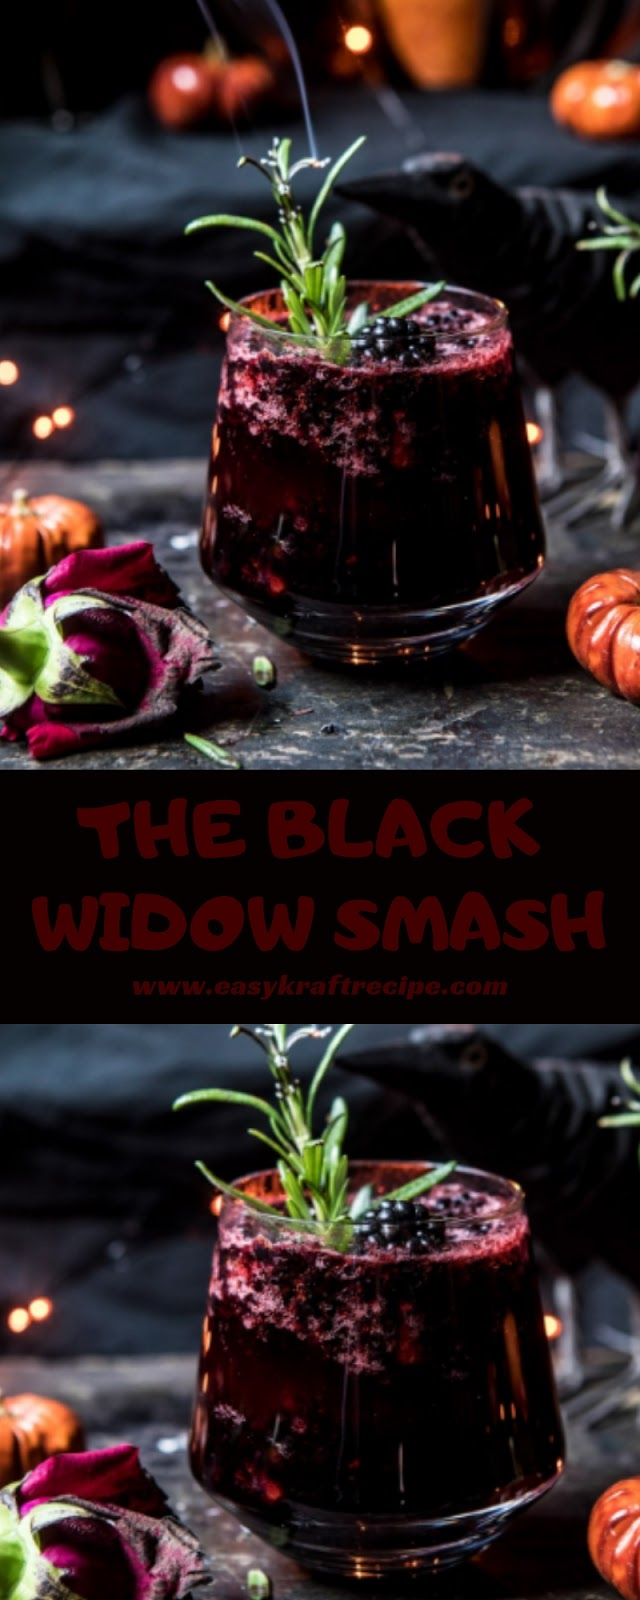 THE BLACK WIDOW SMASH